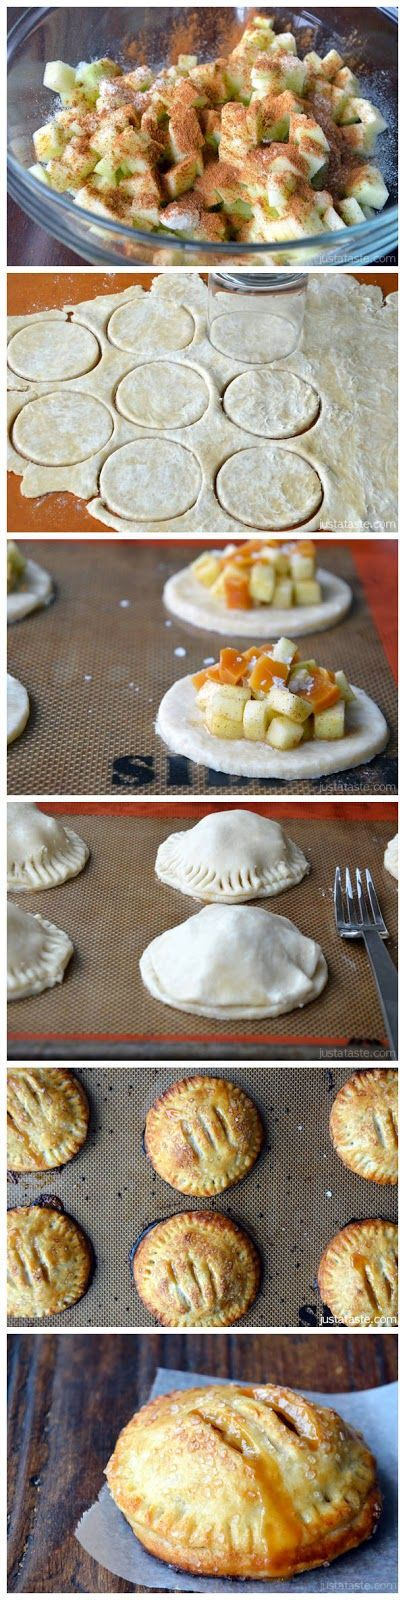 Salted Caramel Apple Hand Pies #recipe from @Kelly Teske Goldsworthy Teske Goldsworthy Teske Goldsworthy Senyei | Just a Taste